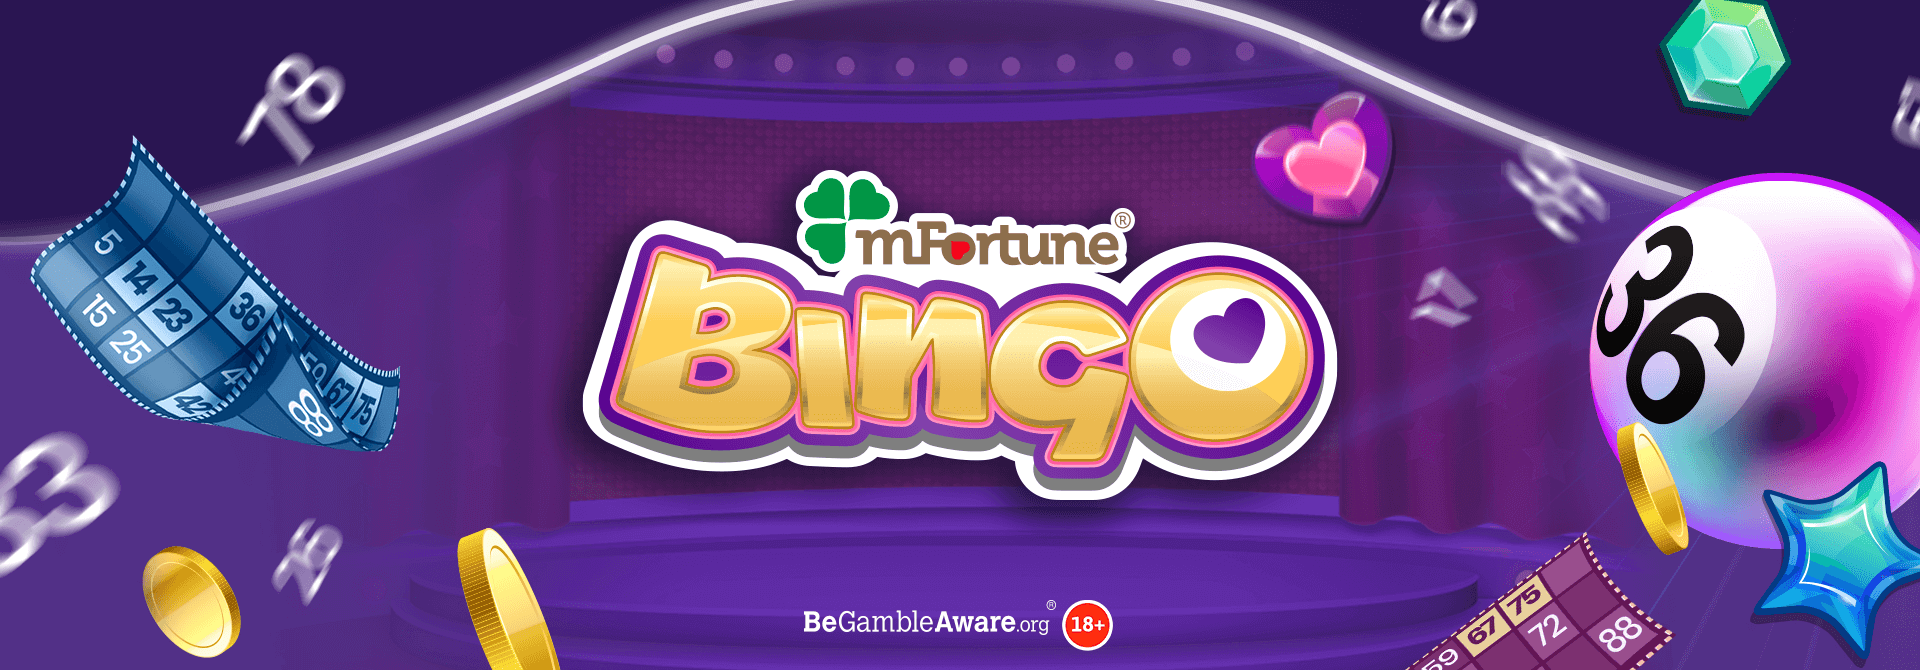 The Christmas cheer is in full force at mFortune Bingo!